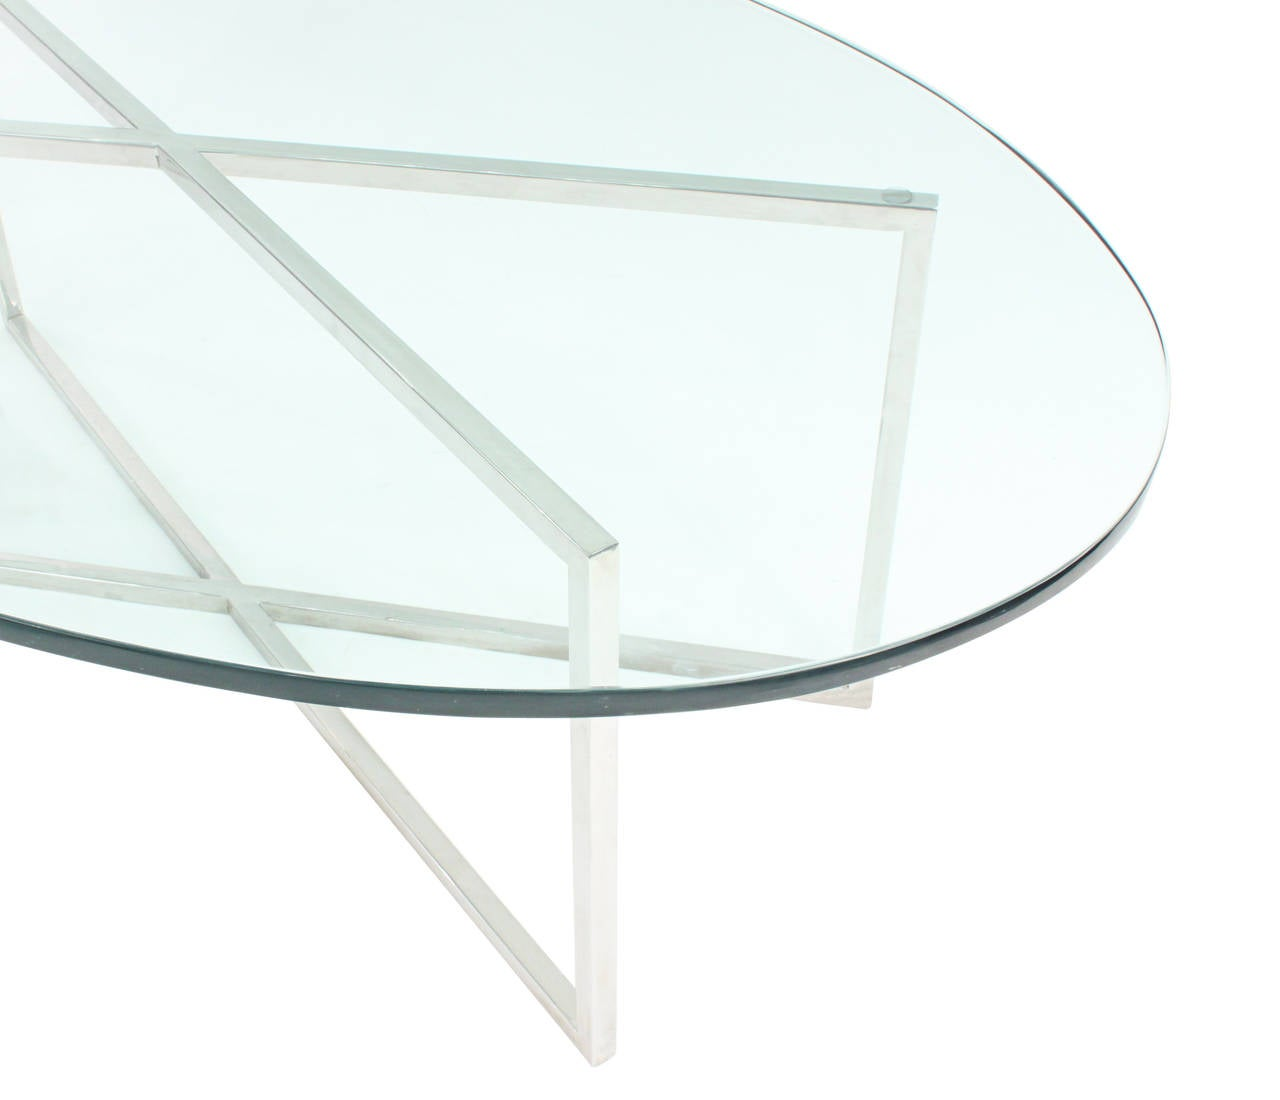 Hand-Crafted Elegant Coffee Table with Polished Steel Base by Tommi Parzinger For Sale